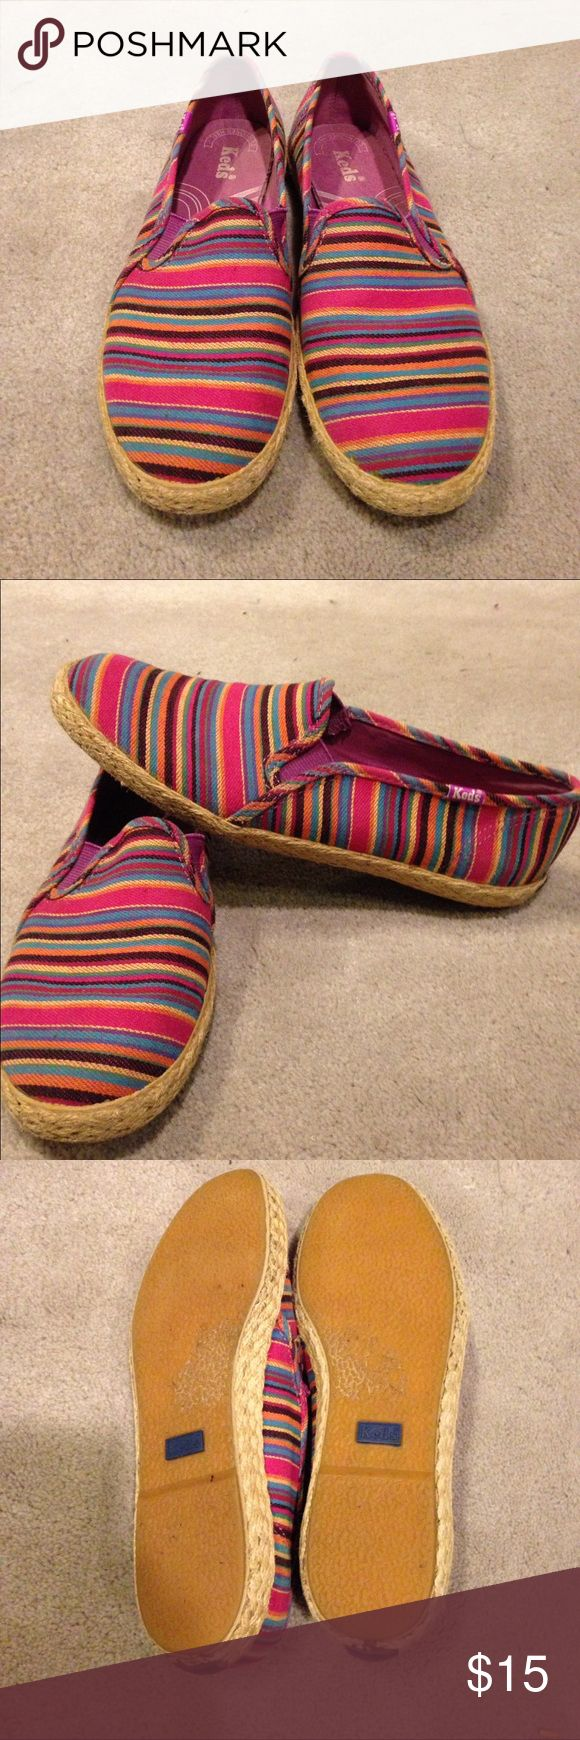 Colorful shoes Colorful slip on ked shoes Keds Shoes Flats & Loafers